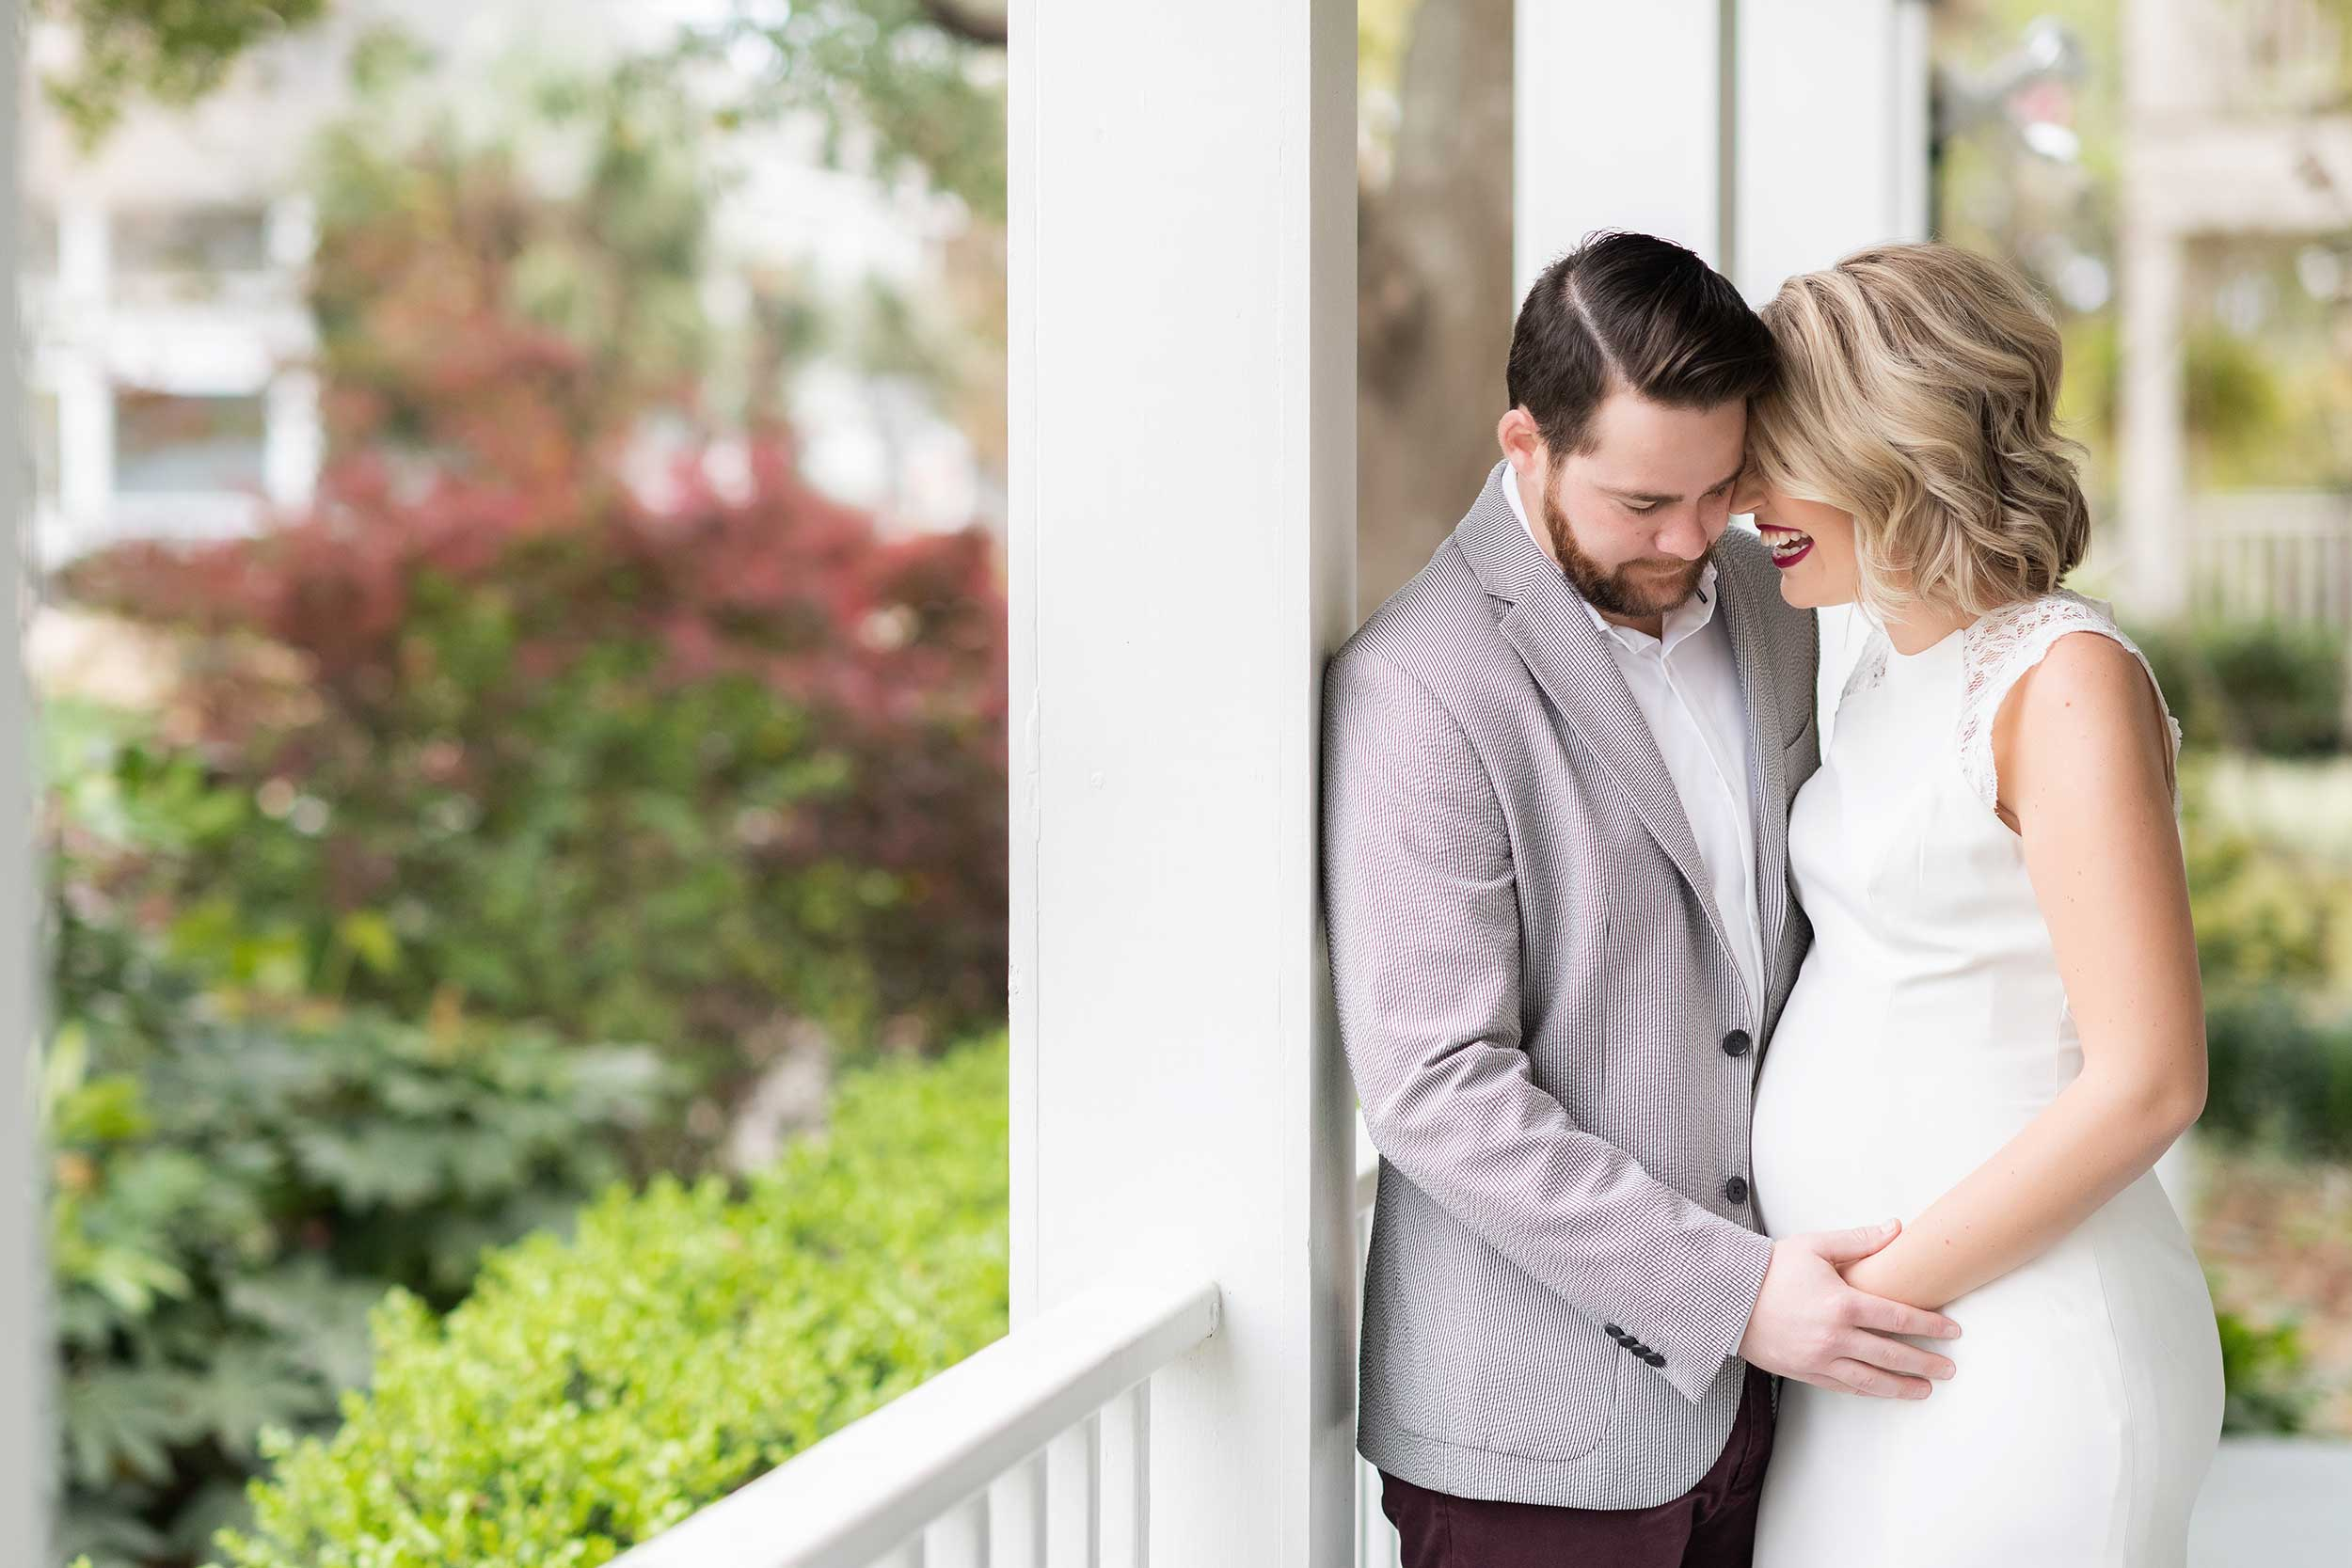 pensacola couple photographer photo of pregnant woman and husband